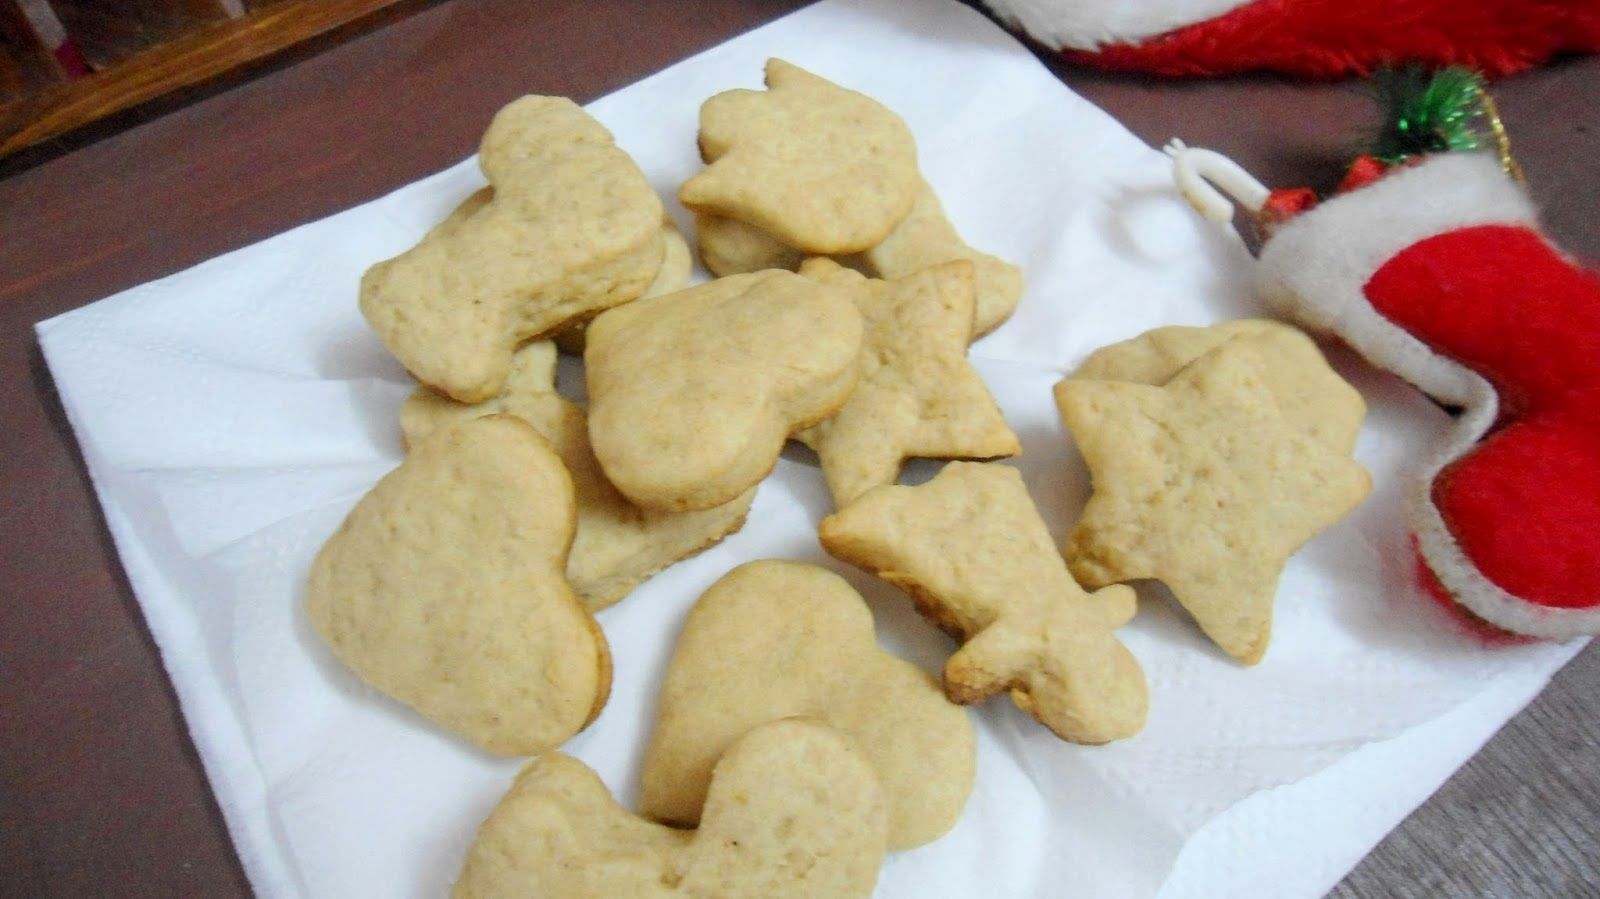 Shortening Bread Cookies Recipes Beautiful Babi S Recipes Short Bread Cookies #shortbreadcookies Shortening Bread Cookies Recipes Beautiful Babi S Recipes Short Bread Cookies